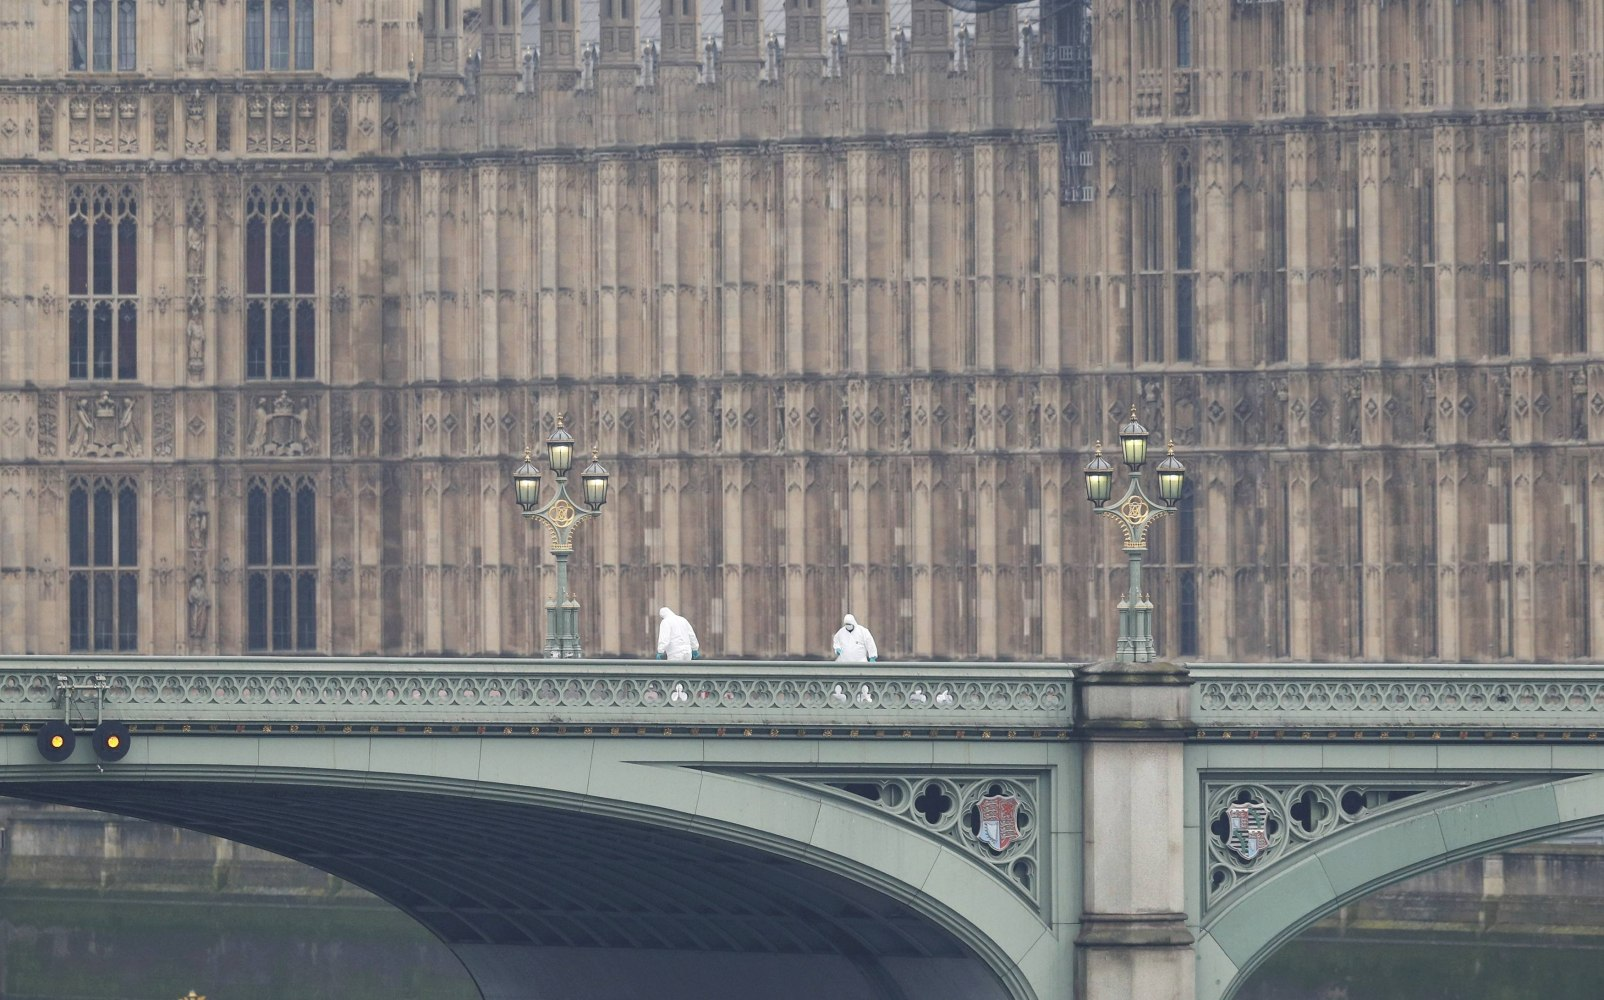 London attack: Police name Westminster attacker